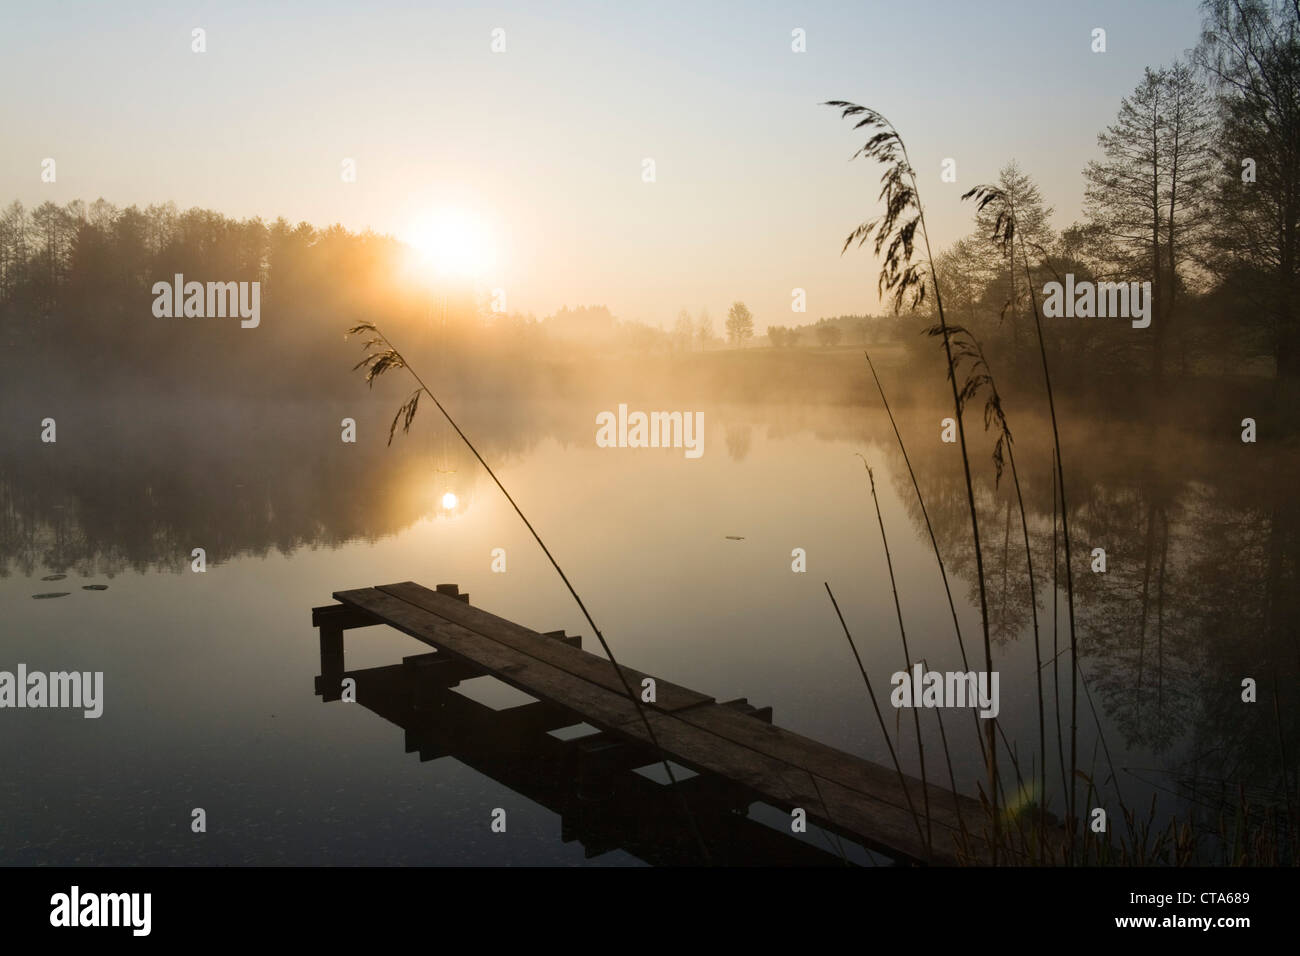 Pond in morning light, Alpine foothills, Upper Bavaria, Germany - Stock Image